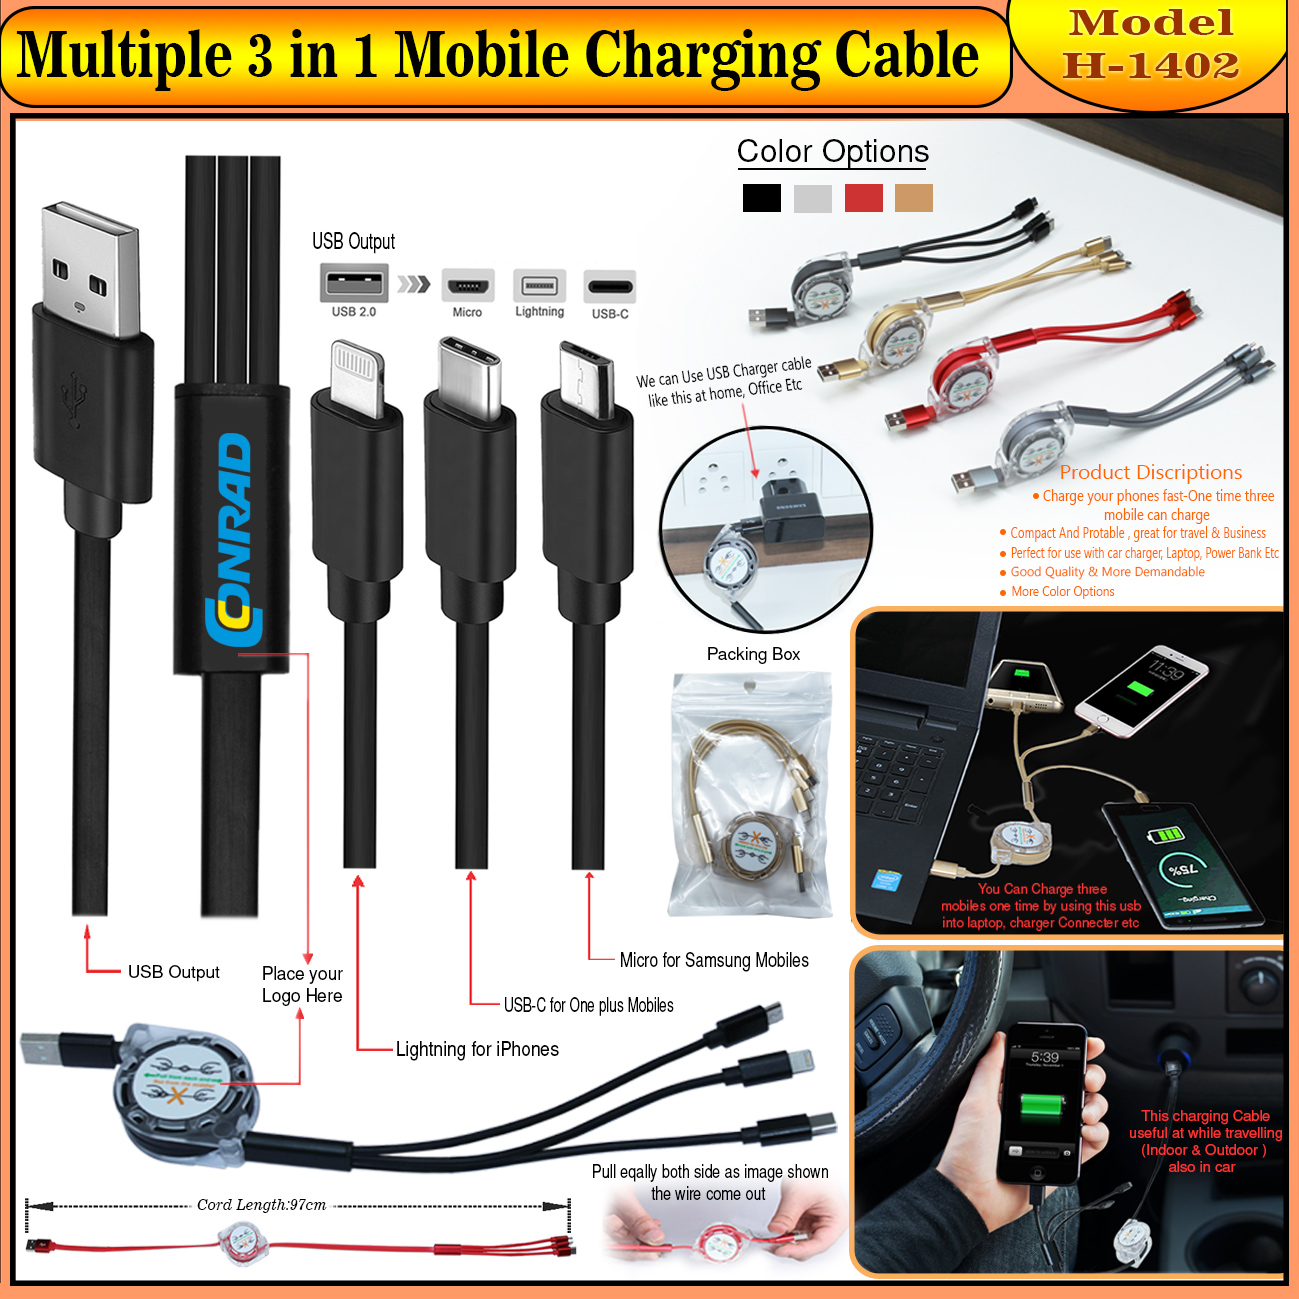 Multiple 3 in 1 Mobile Charging Cable (Model H-1402)